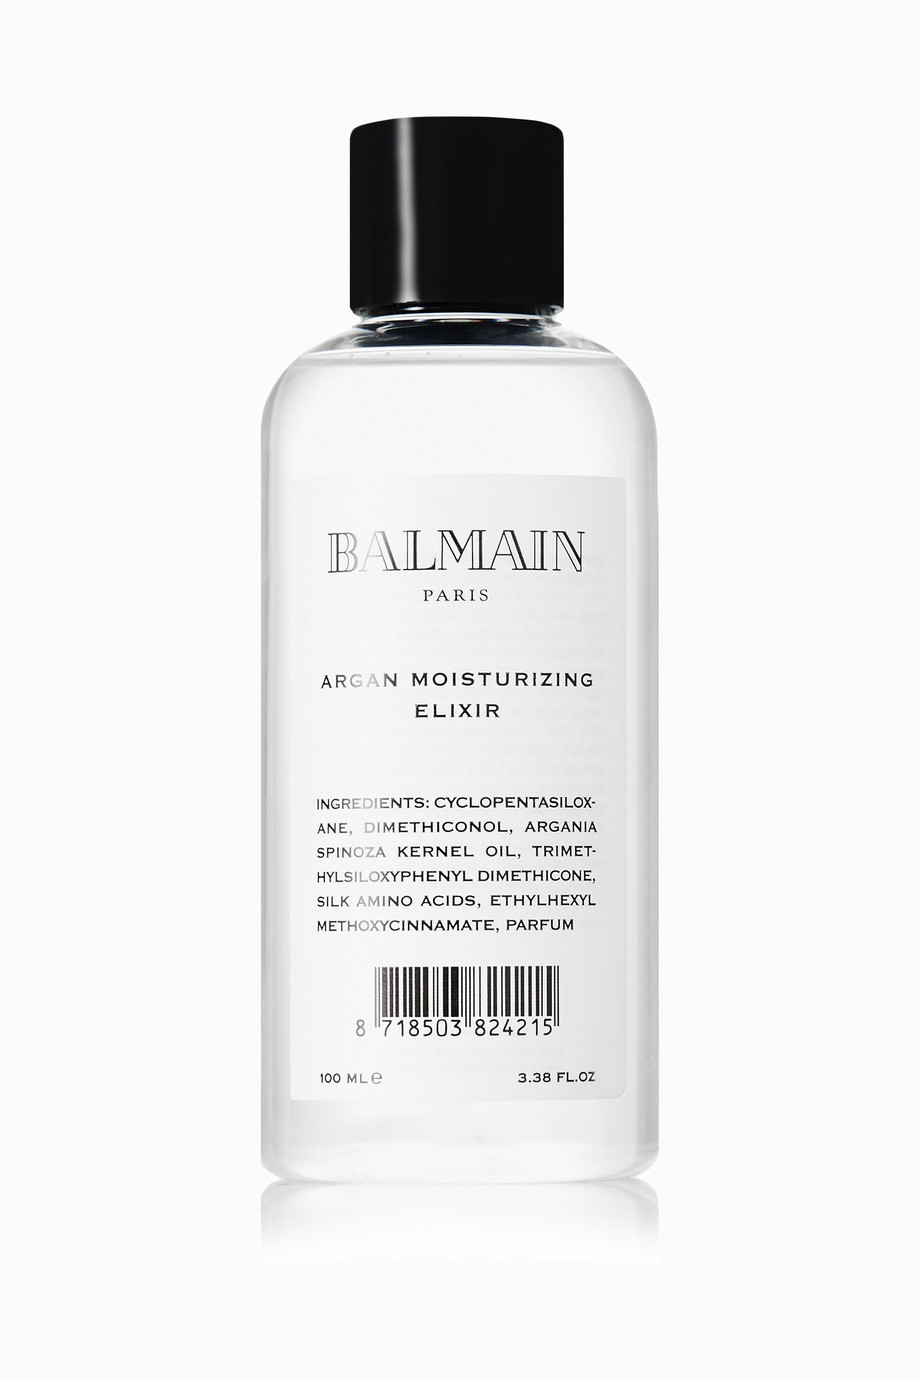 BALMAIN PARIS HAIR COUTURE Argan Moisturizing Elixir, 100ml